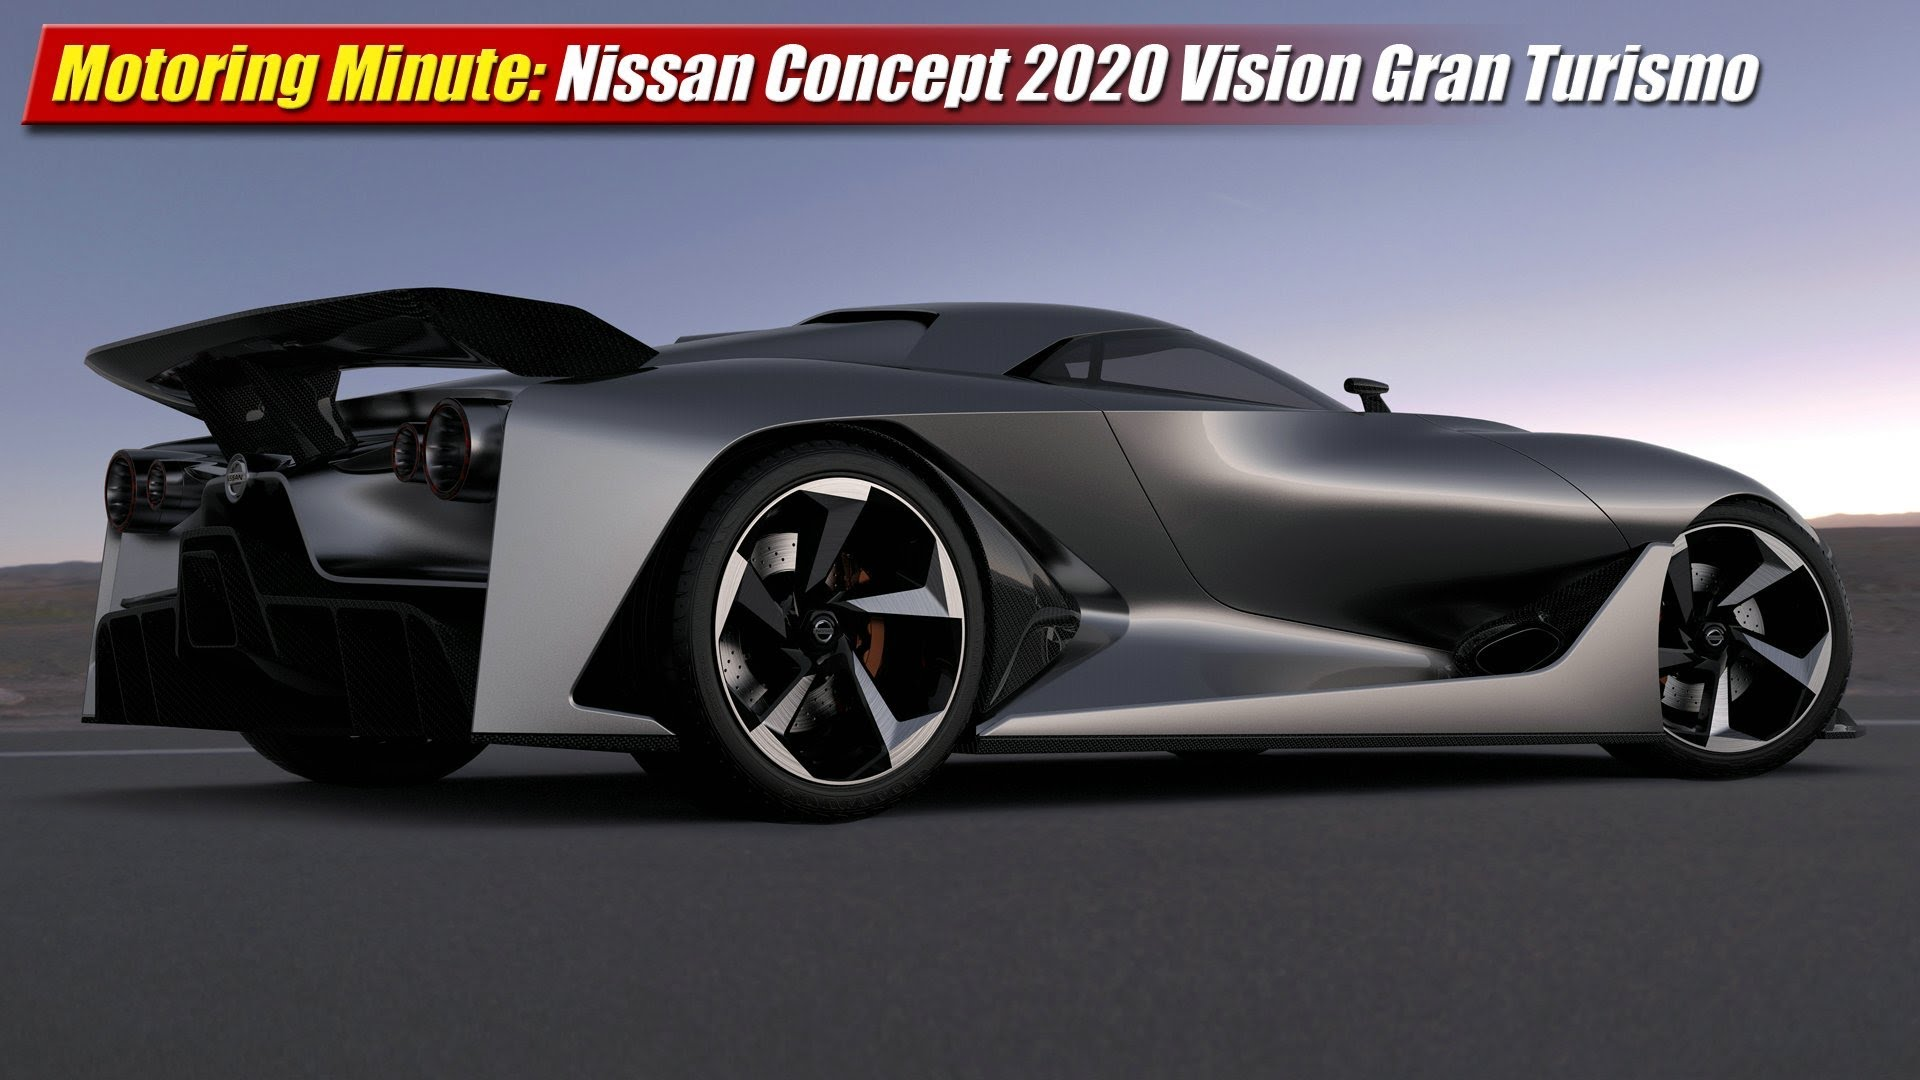 Motoring Minute: Nissan 2020 Vision Concept Gran Turismo